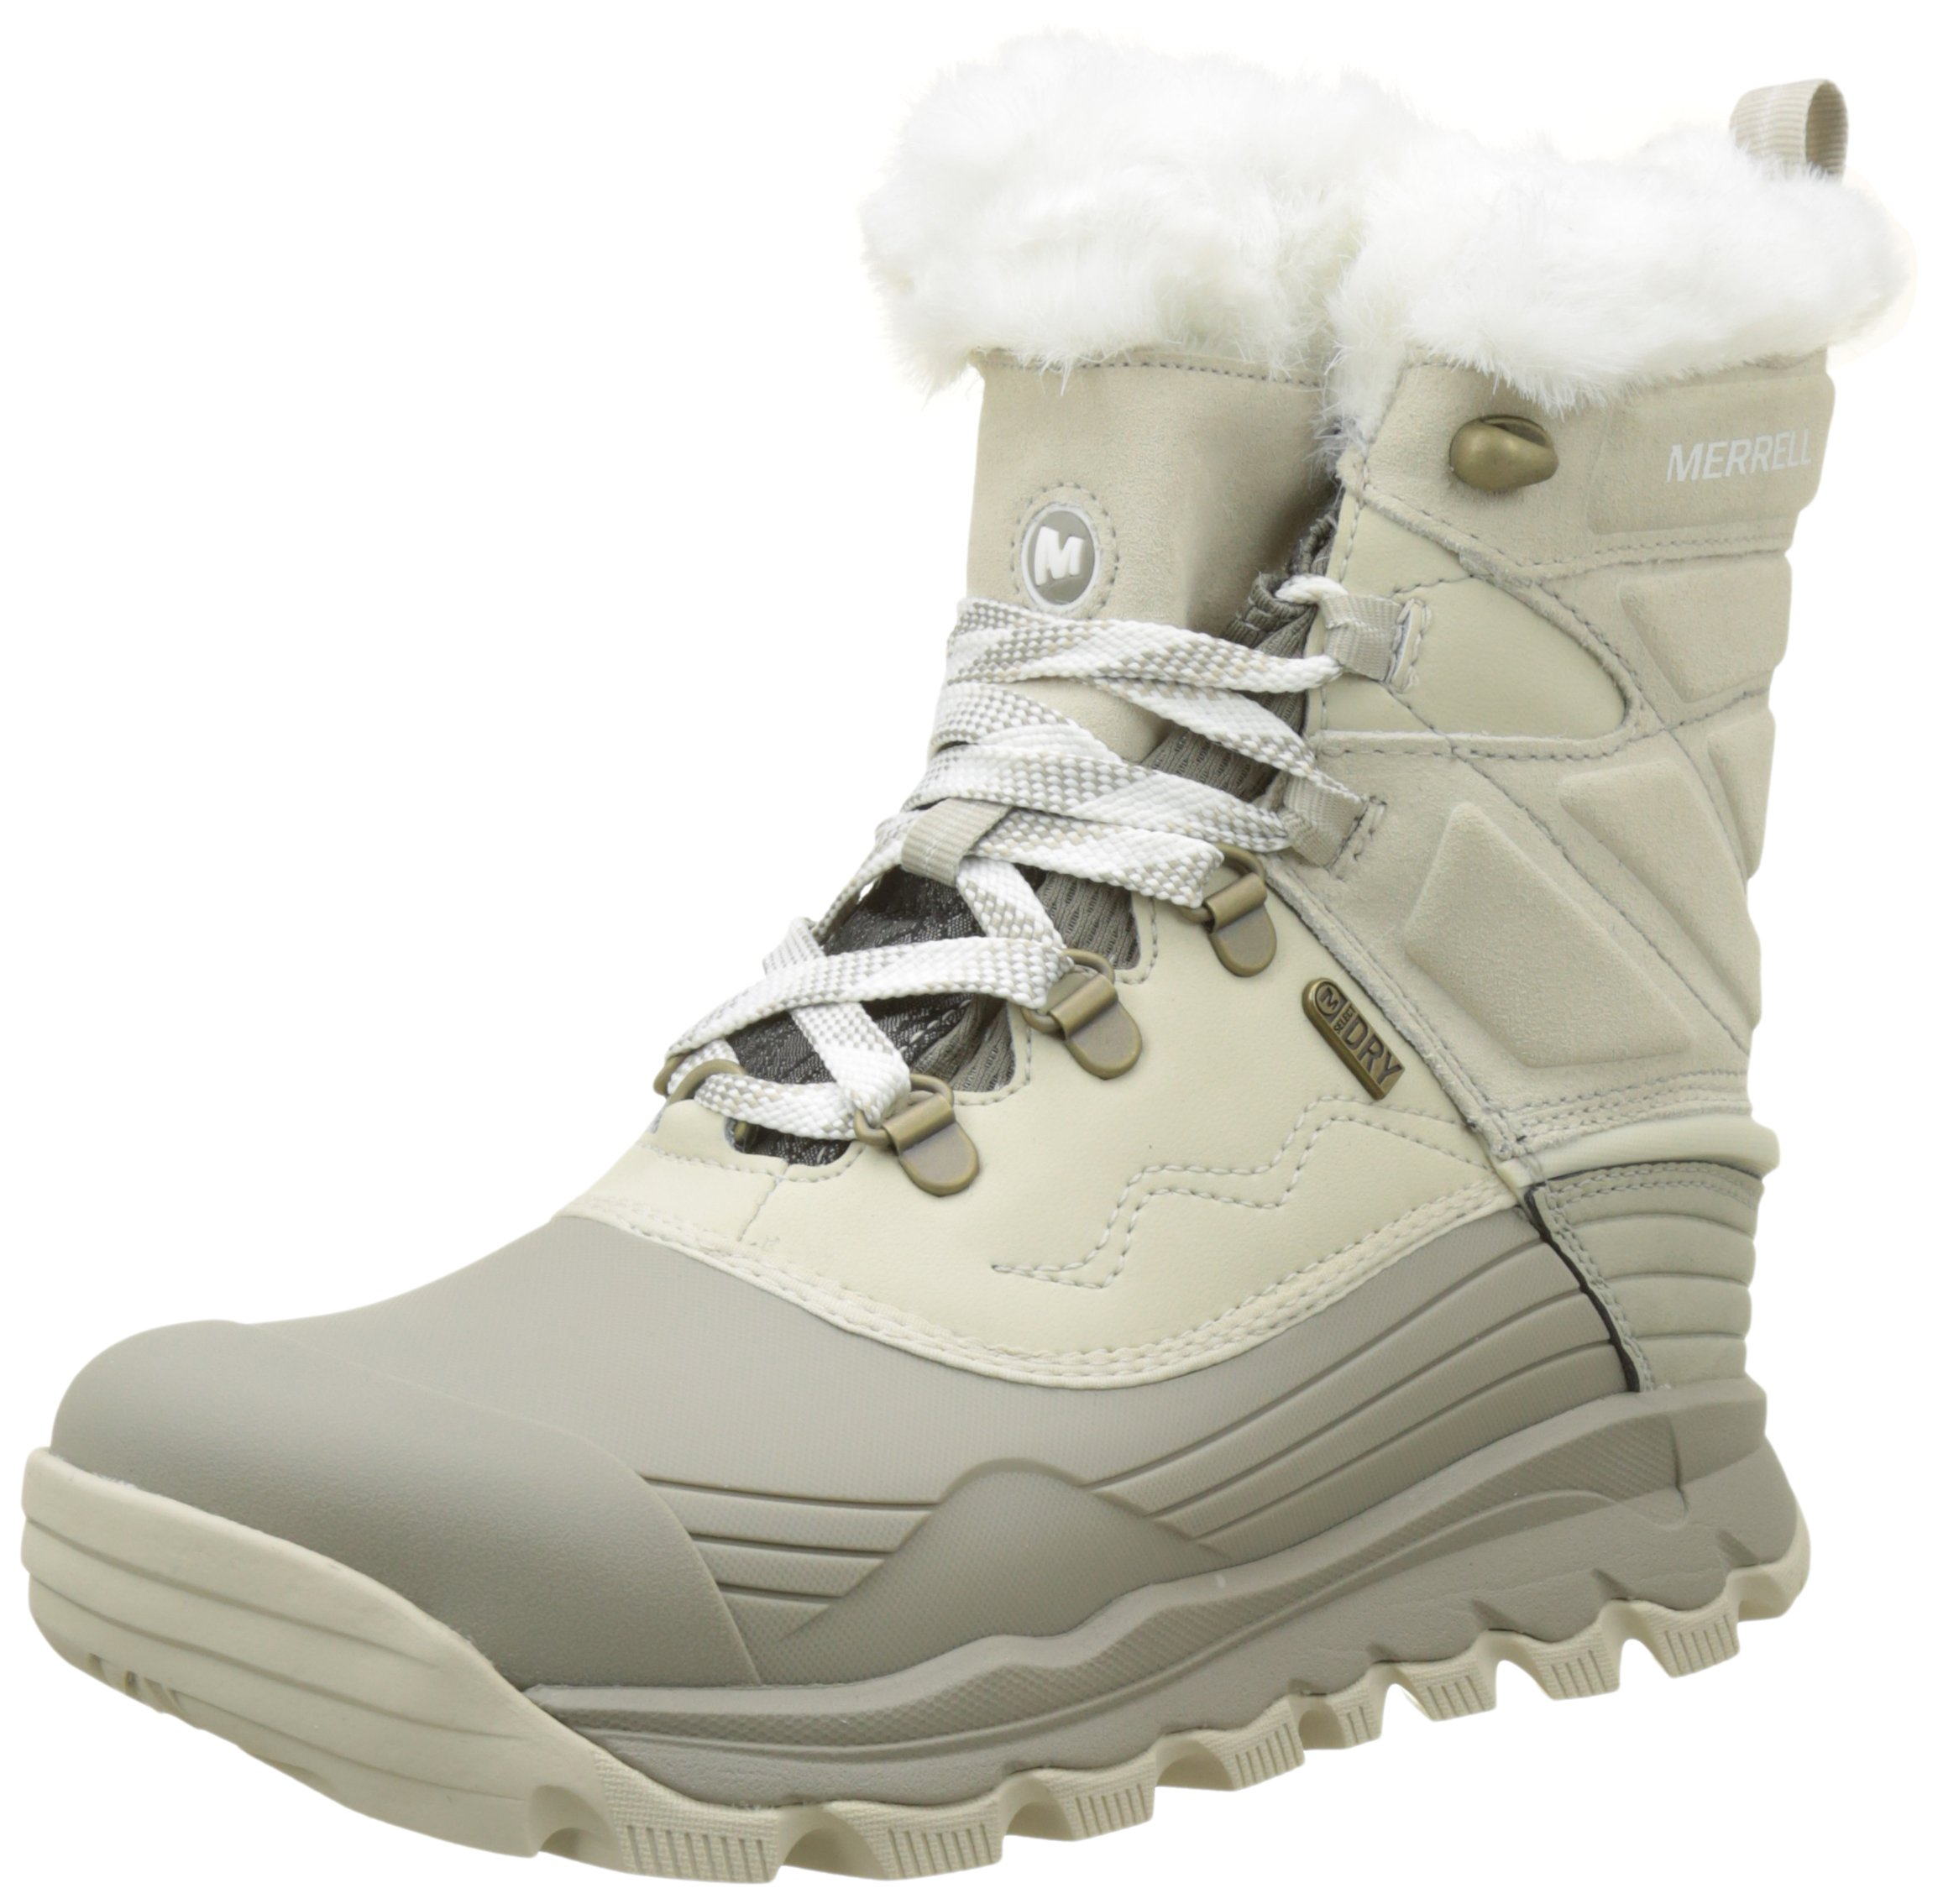 "81IUgNIFzsL - Merrell Women's Thermo Vortex 8"" Waterproof High Rise Hiking Boots"